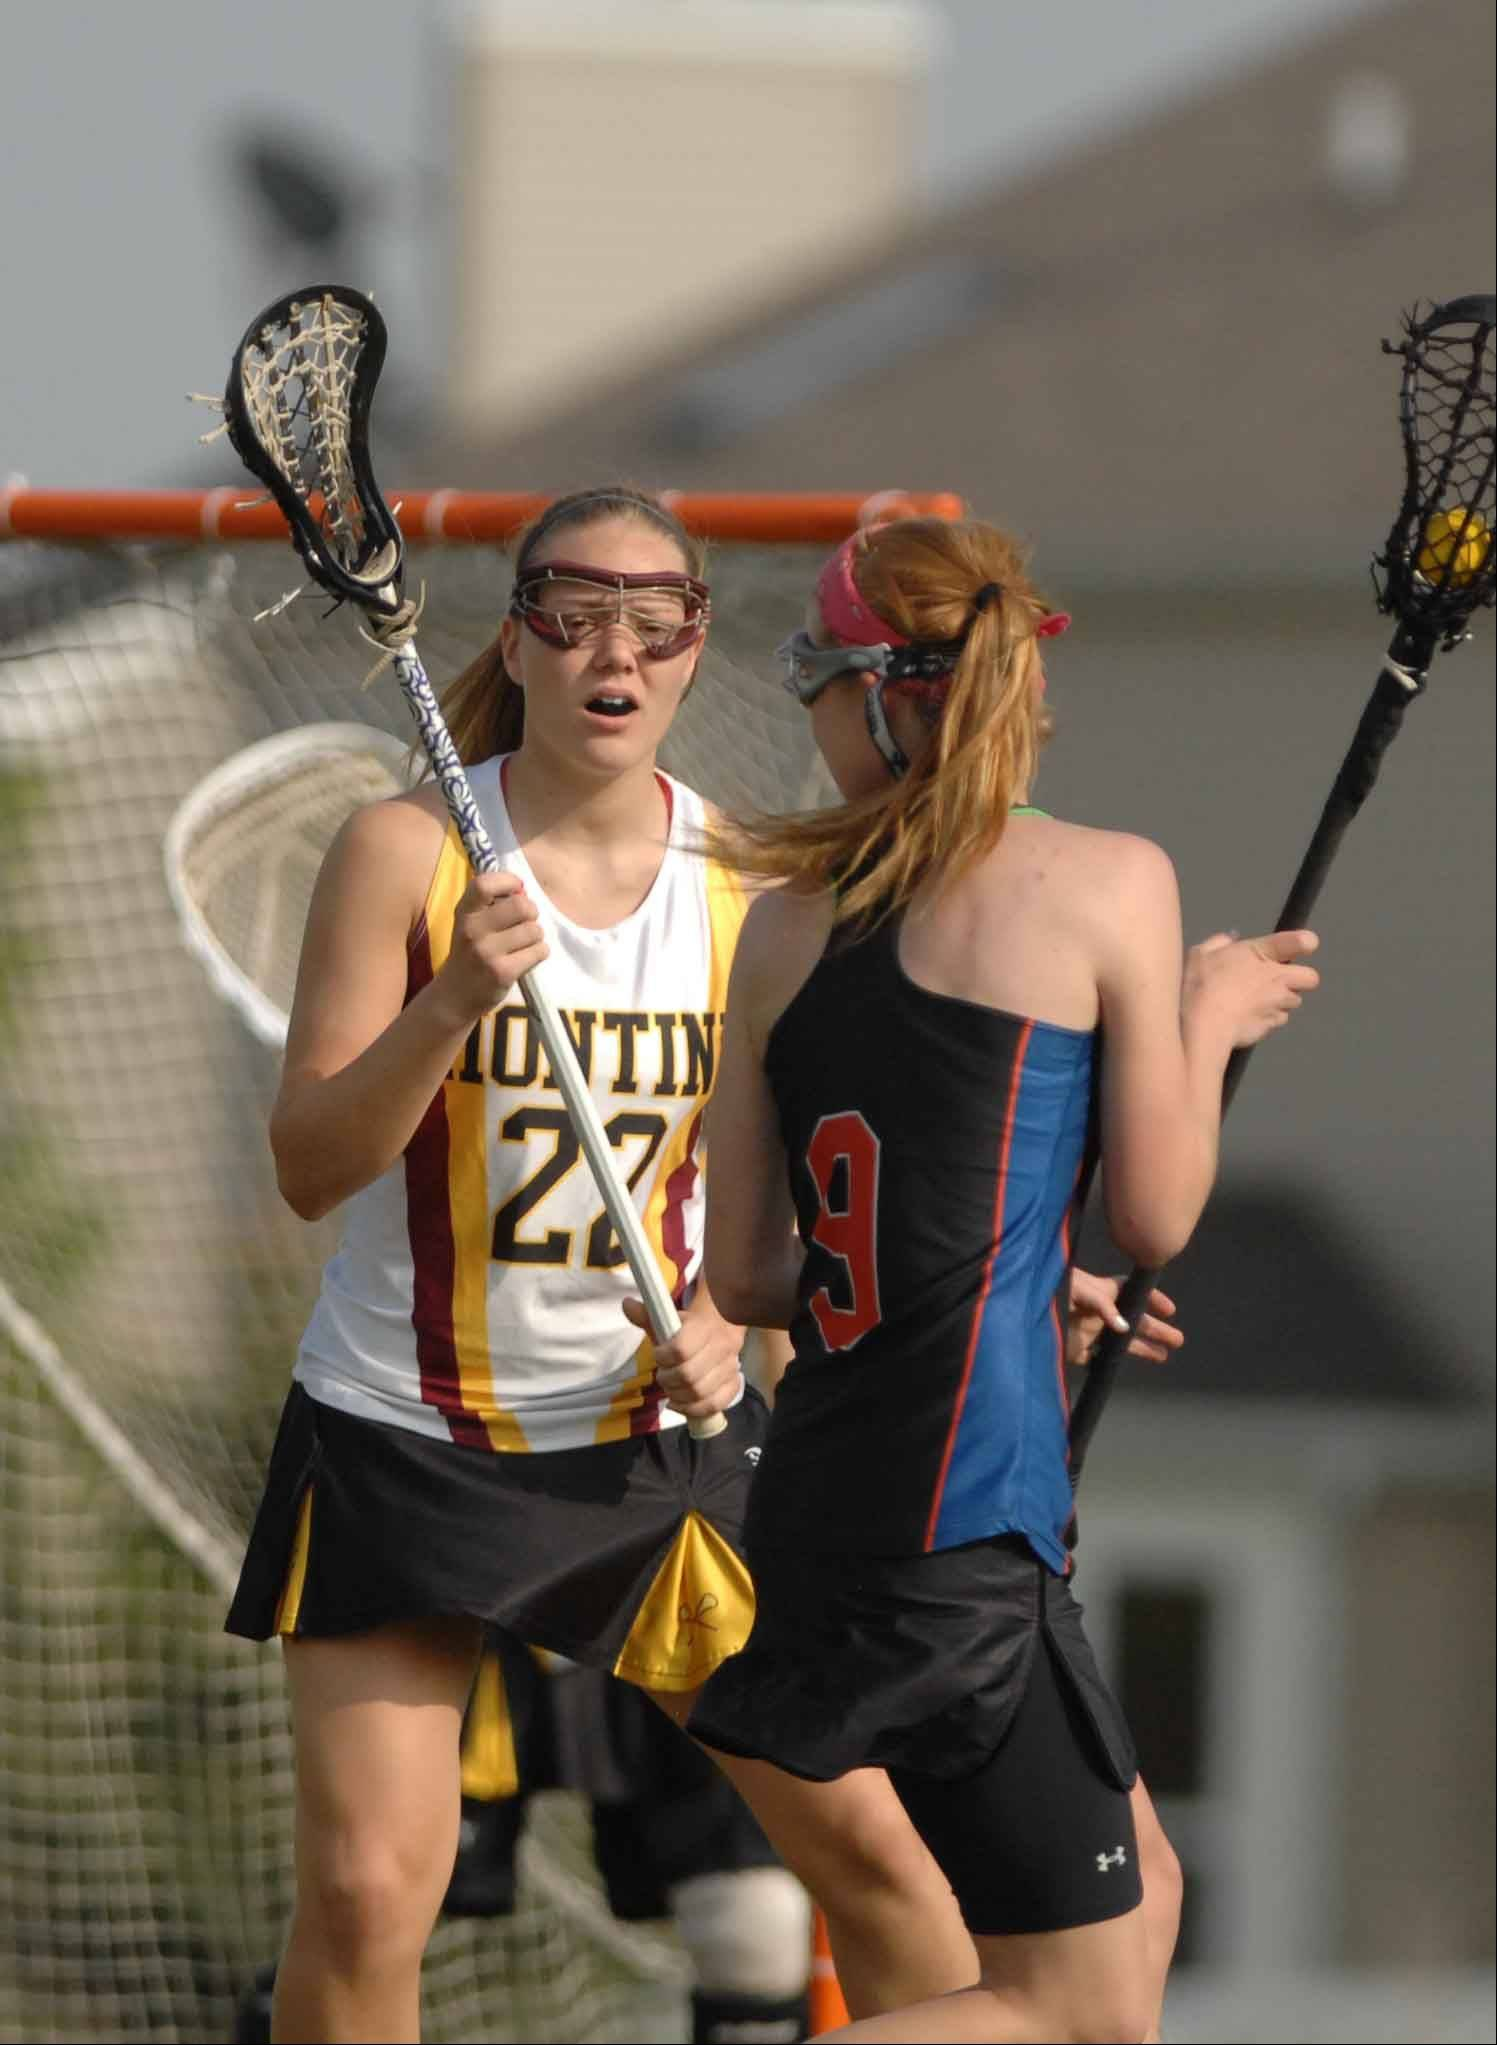 Wheaton vs. Montini girls sectional Lacrosse in Naperville Thursday.